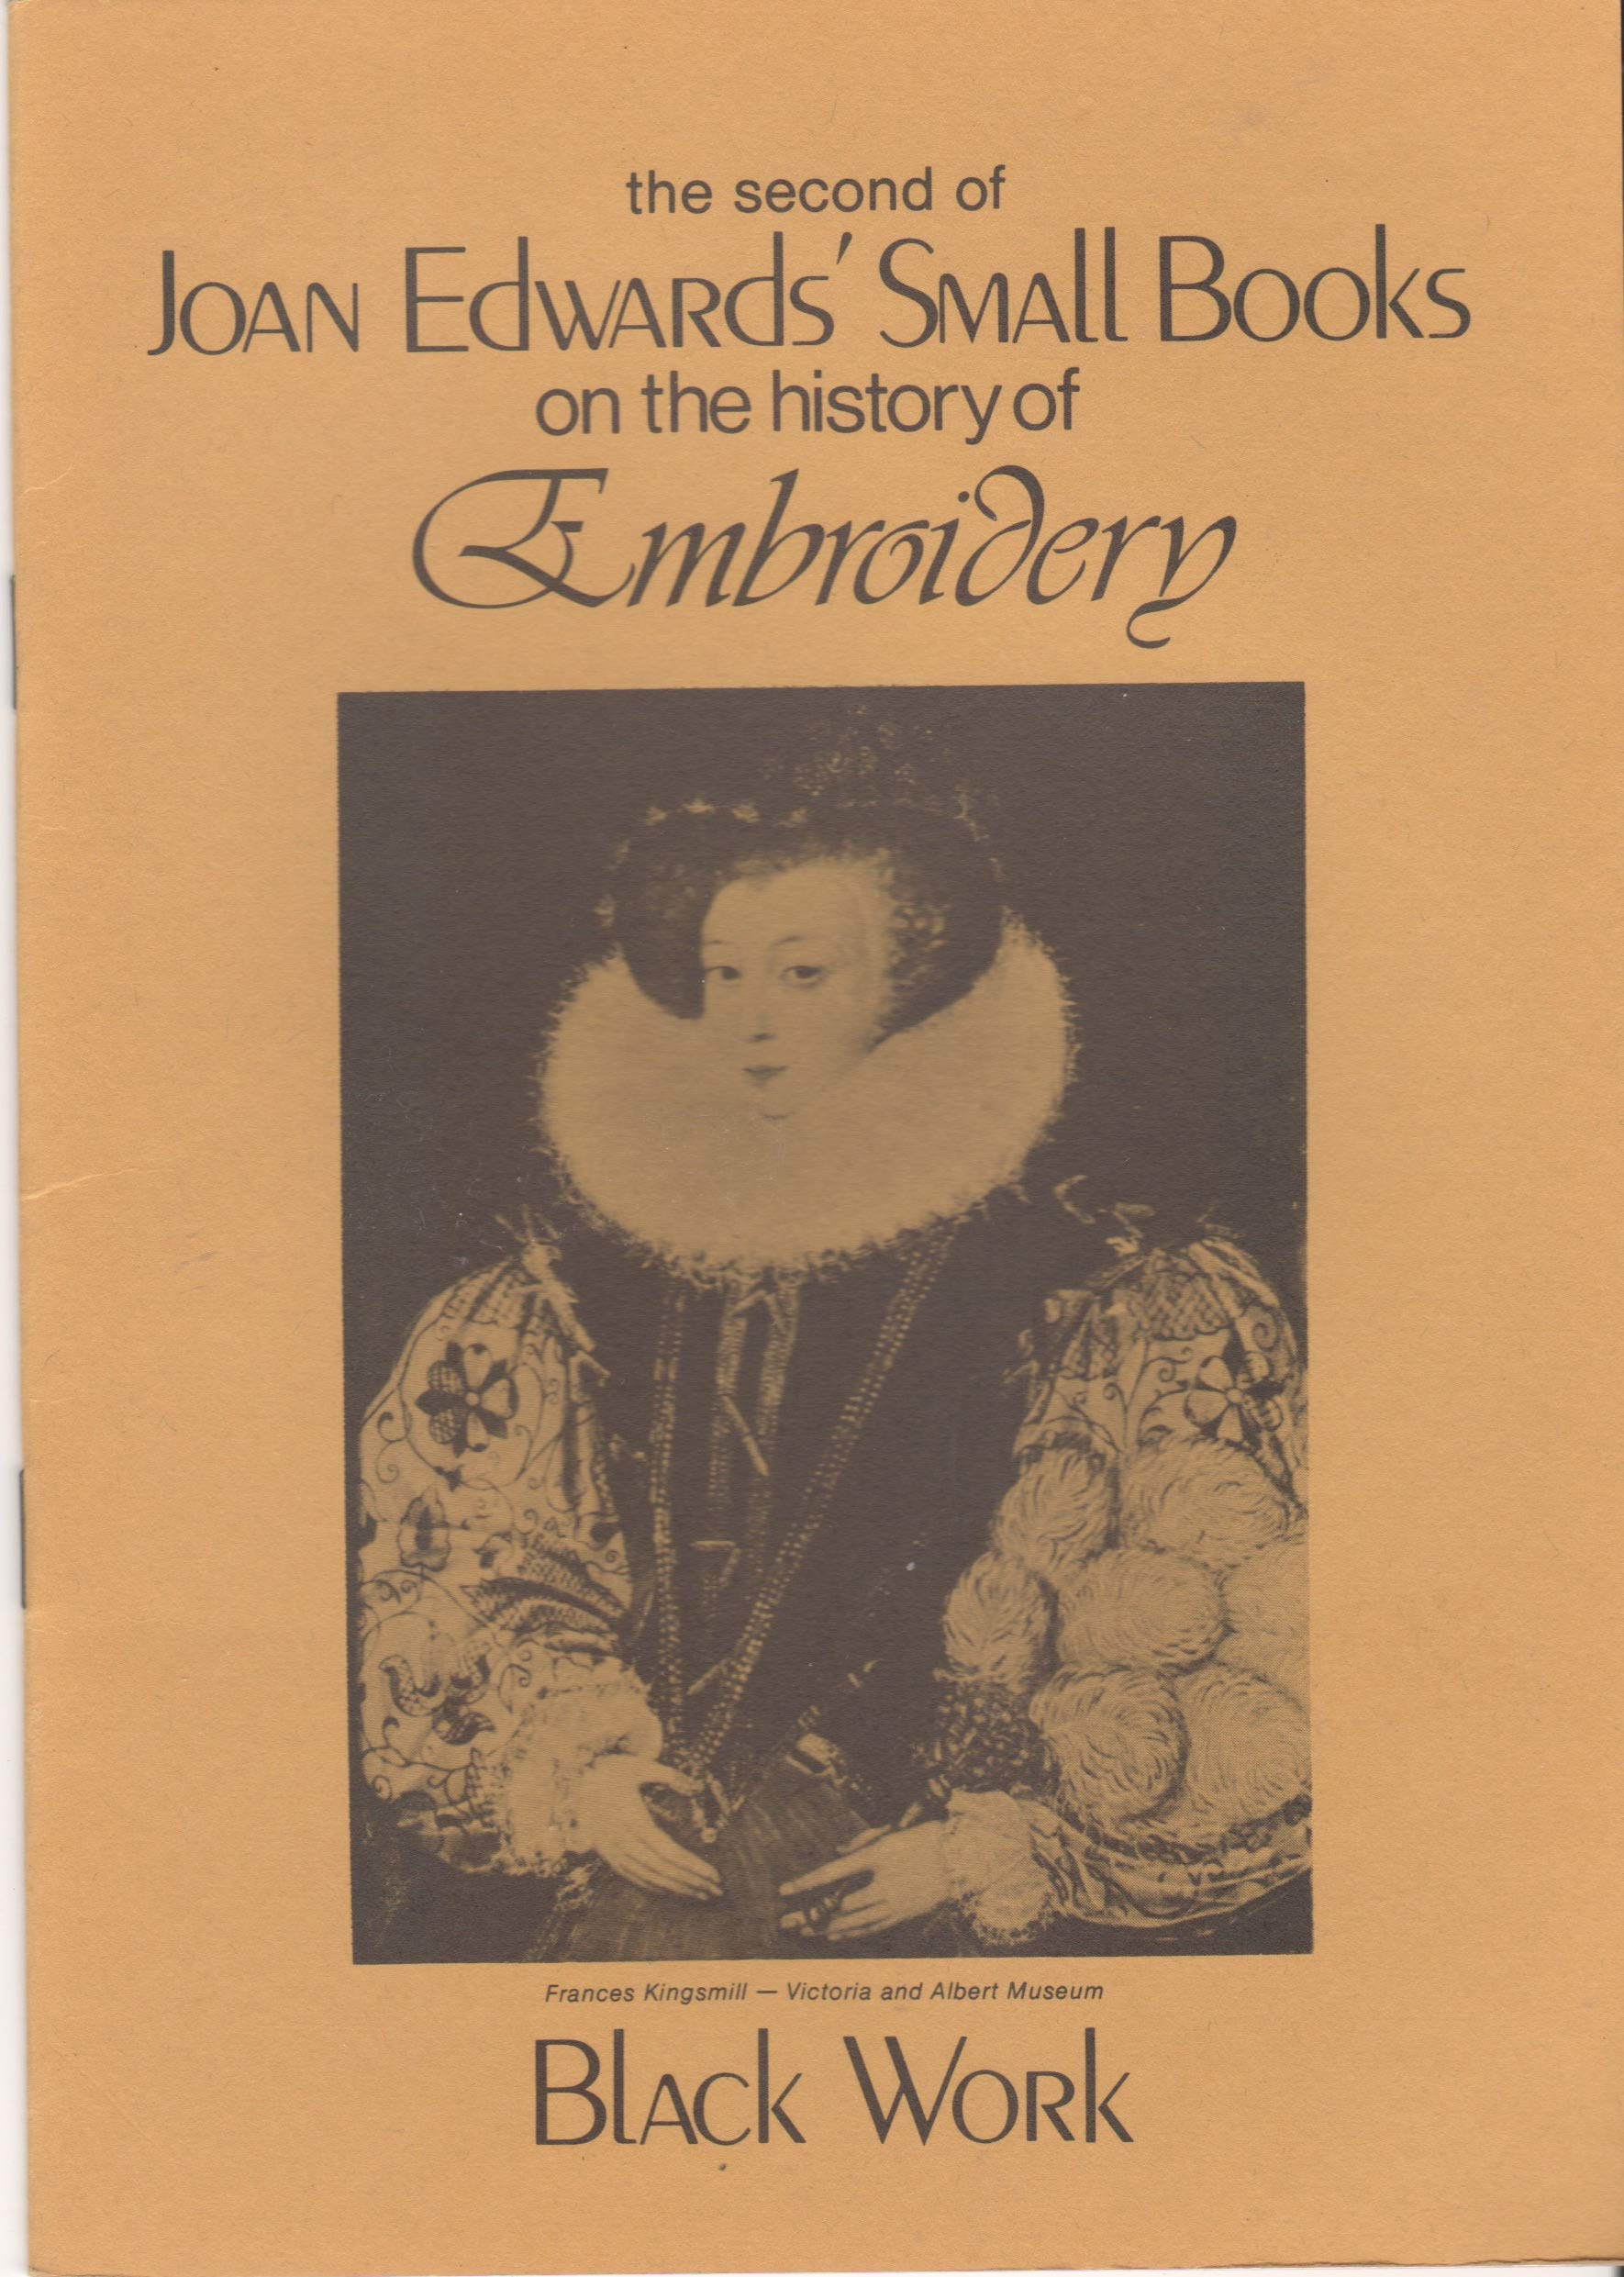 Small Books on the History of Embroidery: Black Work: Amazon.co.uk: Joan  Edwards: 9780907287001: Books